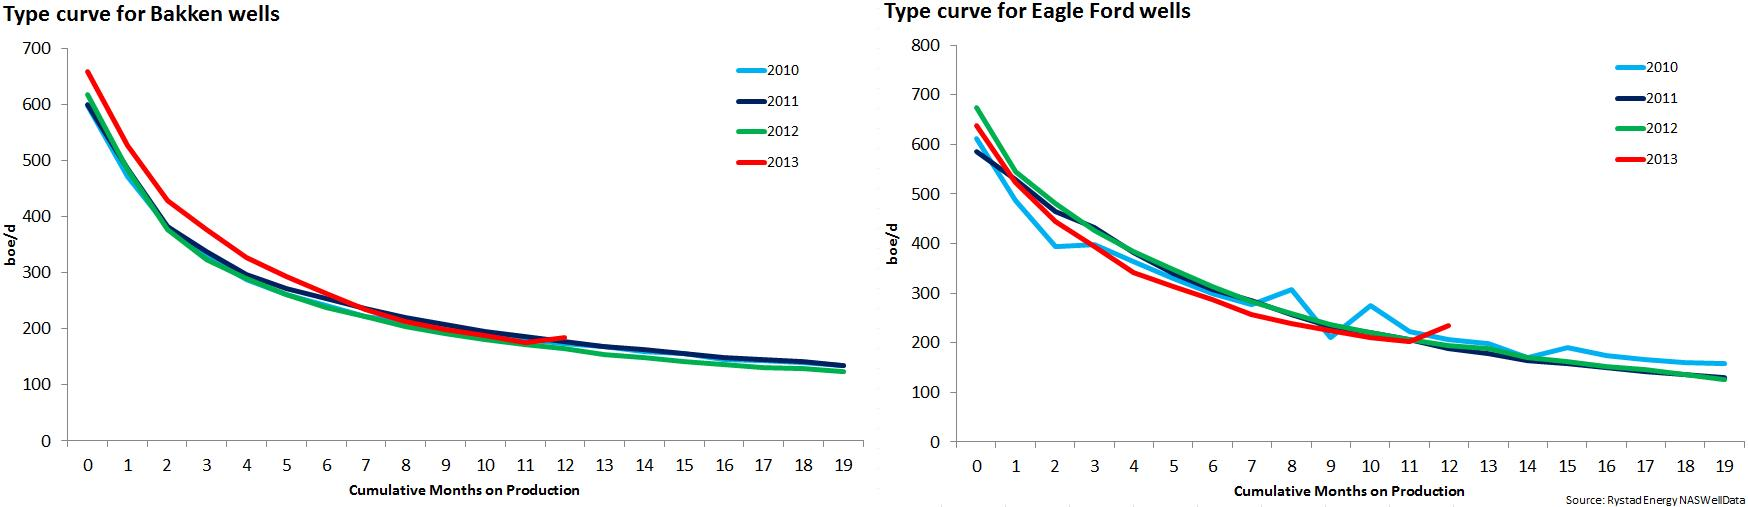 Shale Curves Source: Rystad Energy